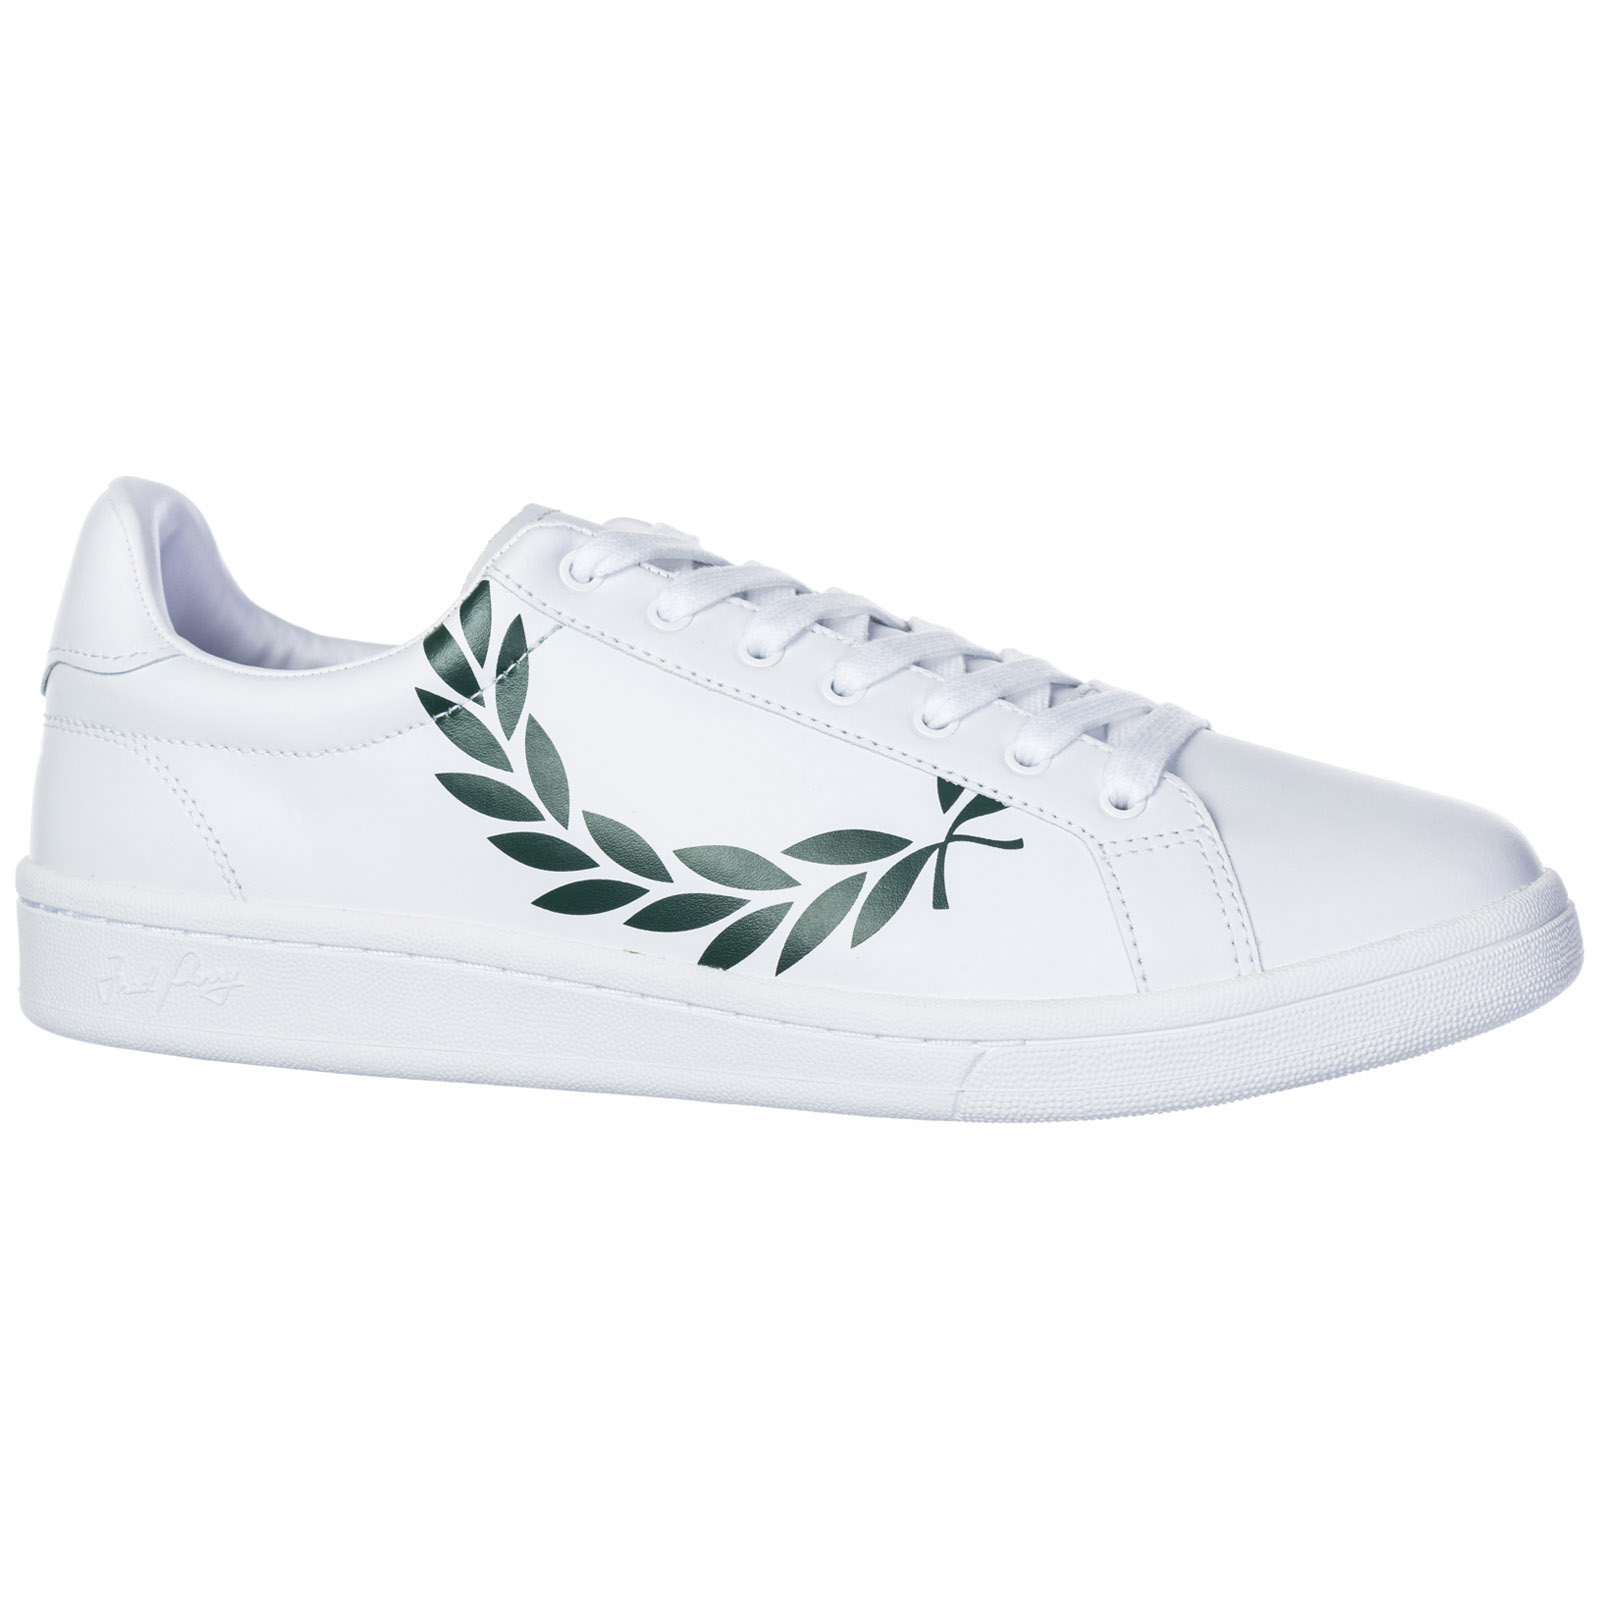 Men's shoes leather trainers sneakers b721 laurel